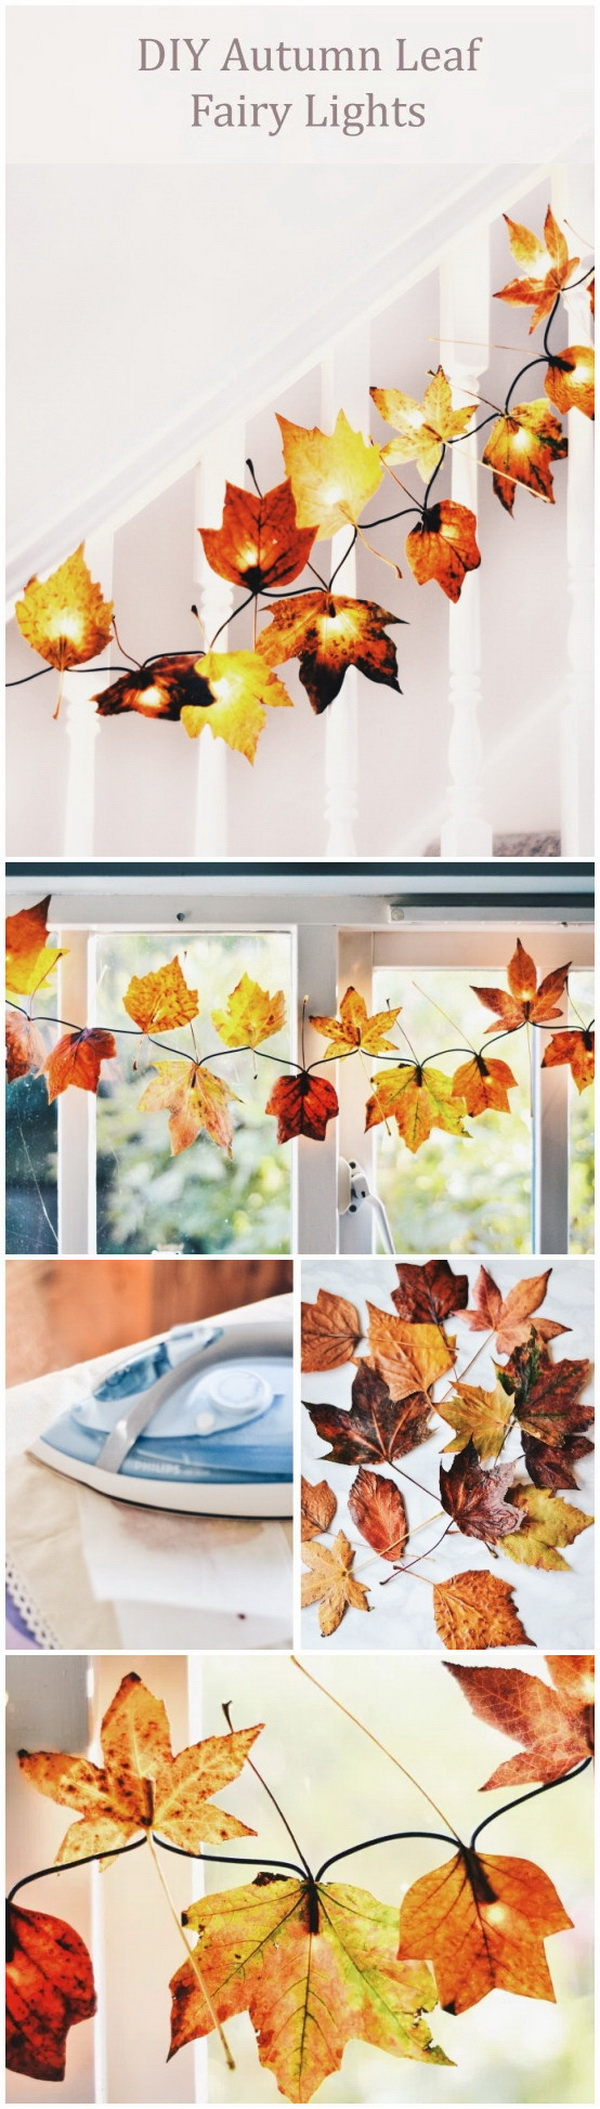 DIY Autumn Leaf Fairy Lights. Great lighting ideas for the upcome fall and thanksgiving season and bring some autumn decor into your home in a really easy, fun and inexpensive way!